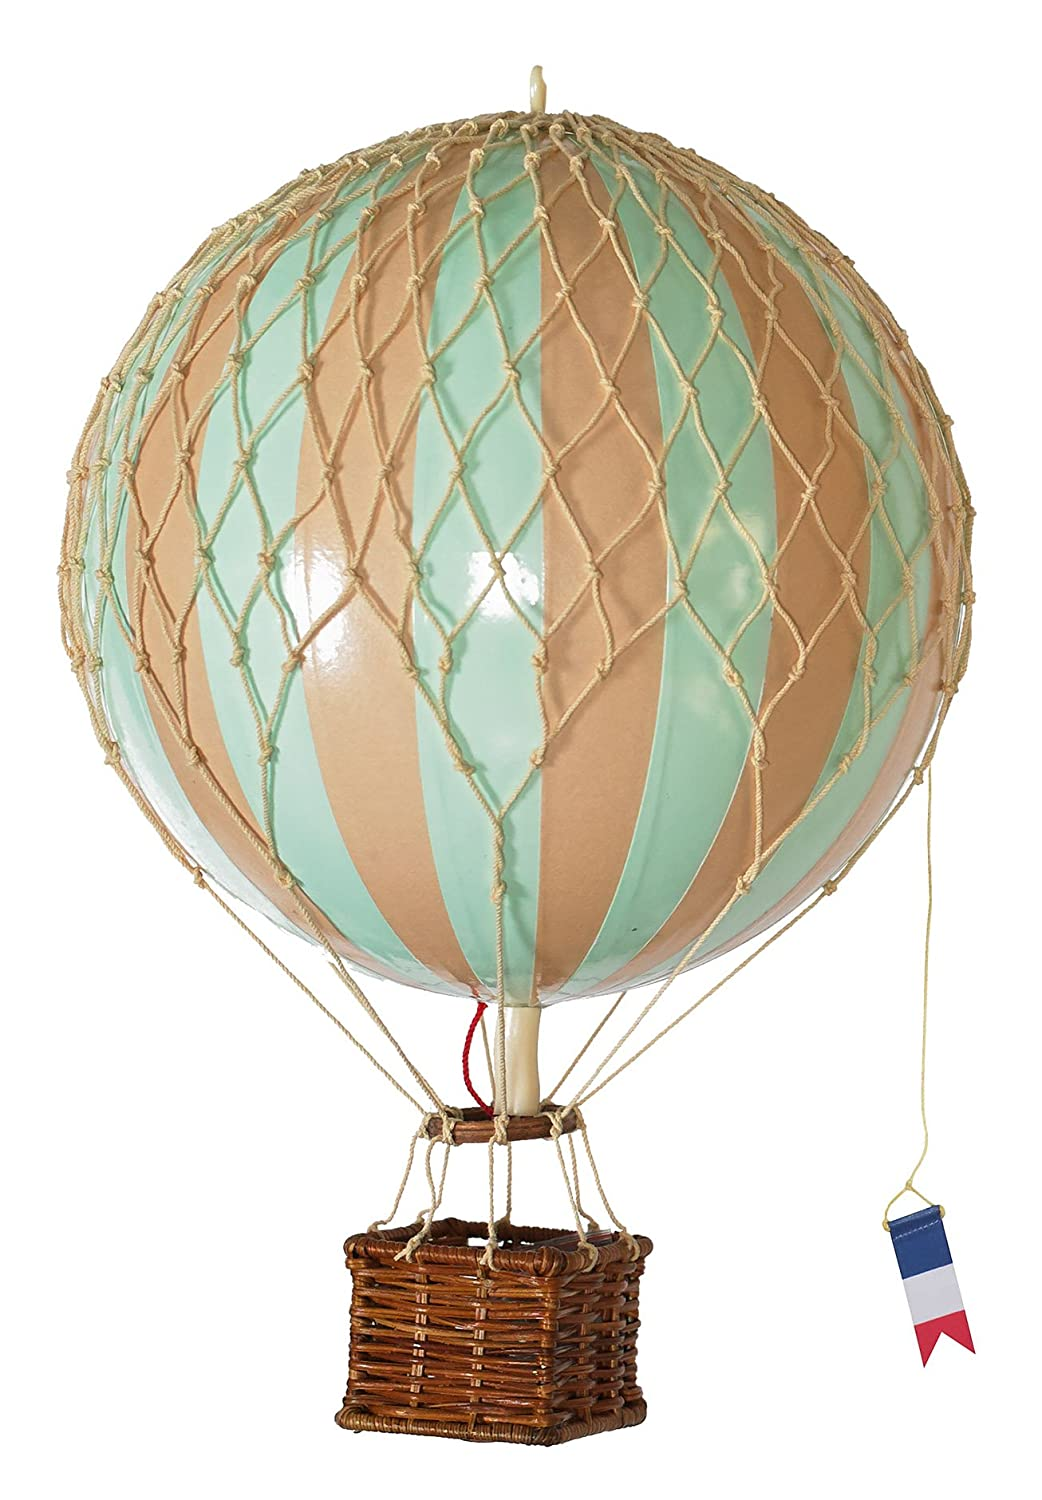 Authentic Models - Ballon - Heißluftballon - Royal Aero - - - Mint - Ø 32 cm B07DFHHDLW Fahrzeuge d95d55